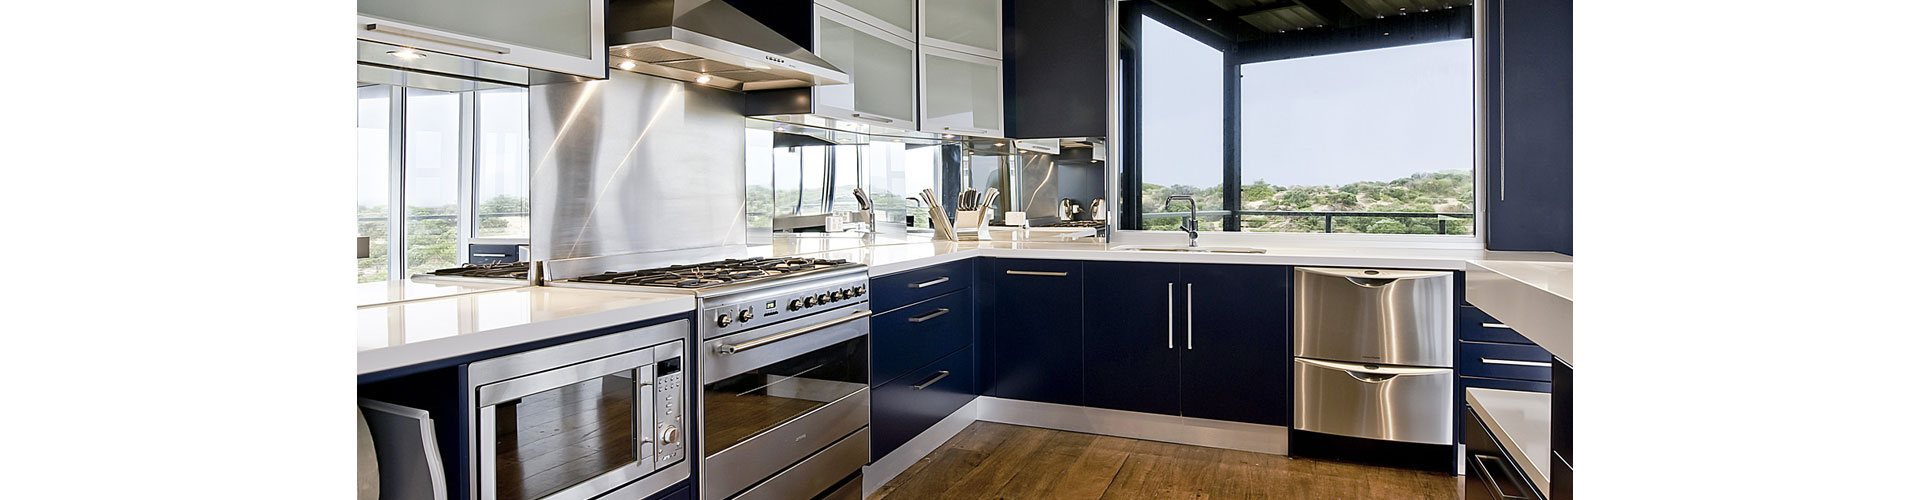 Kitchen Appliances Perth Premium Appliance Repairs Perth And Fremantle 1300 614 730